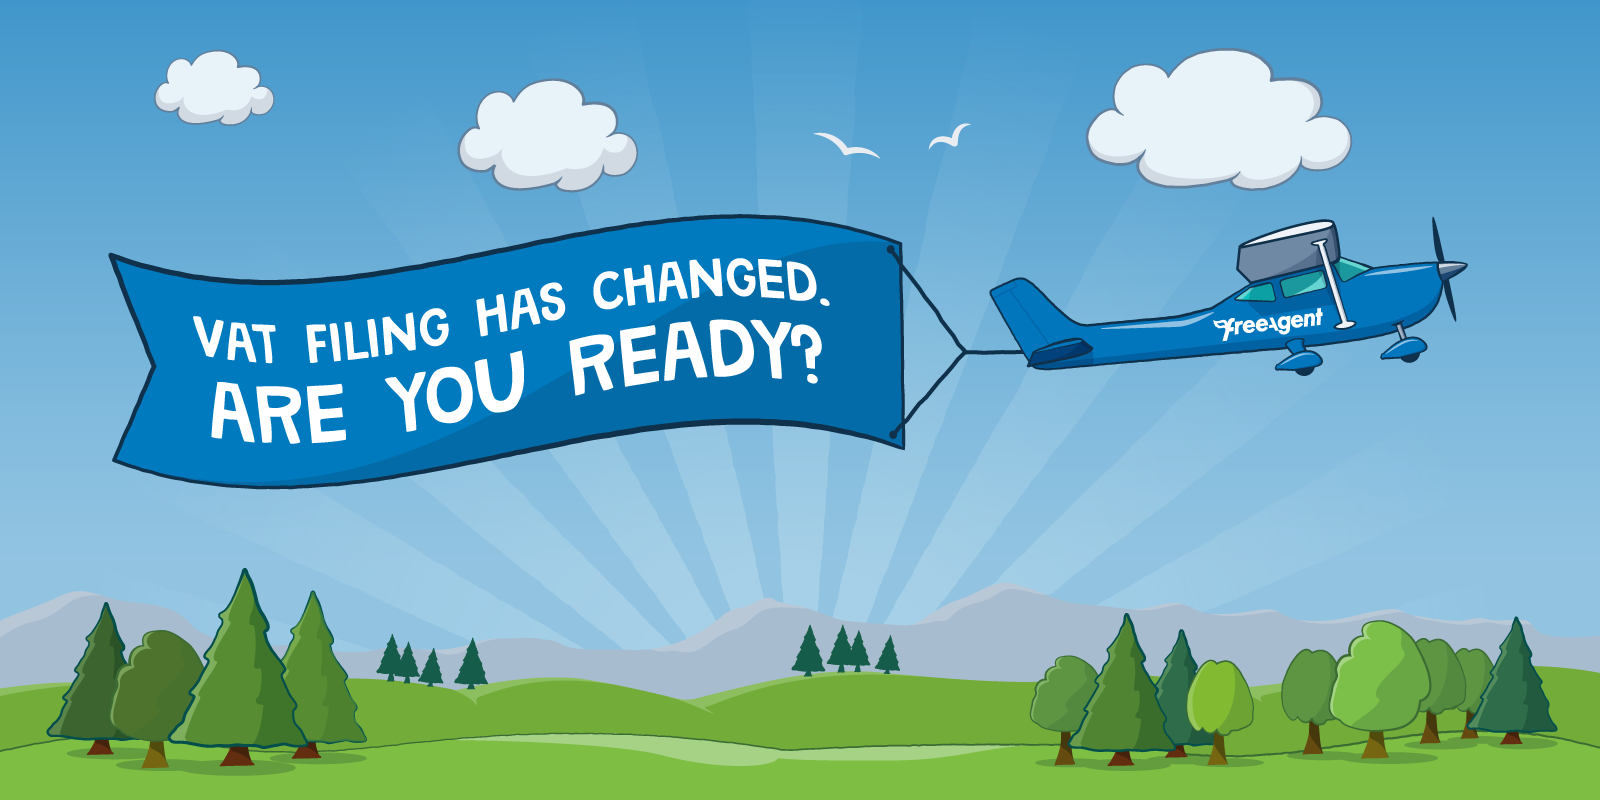 VAT filing has changed. Are you ready?